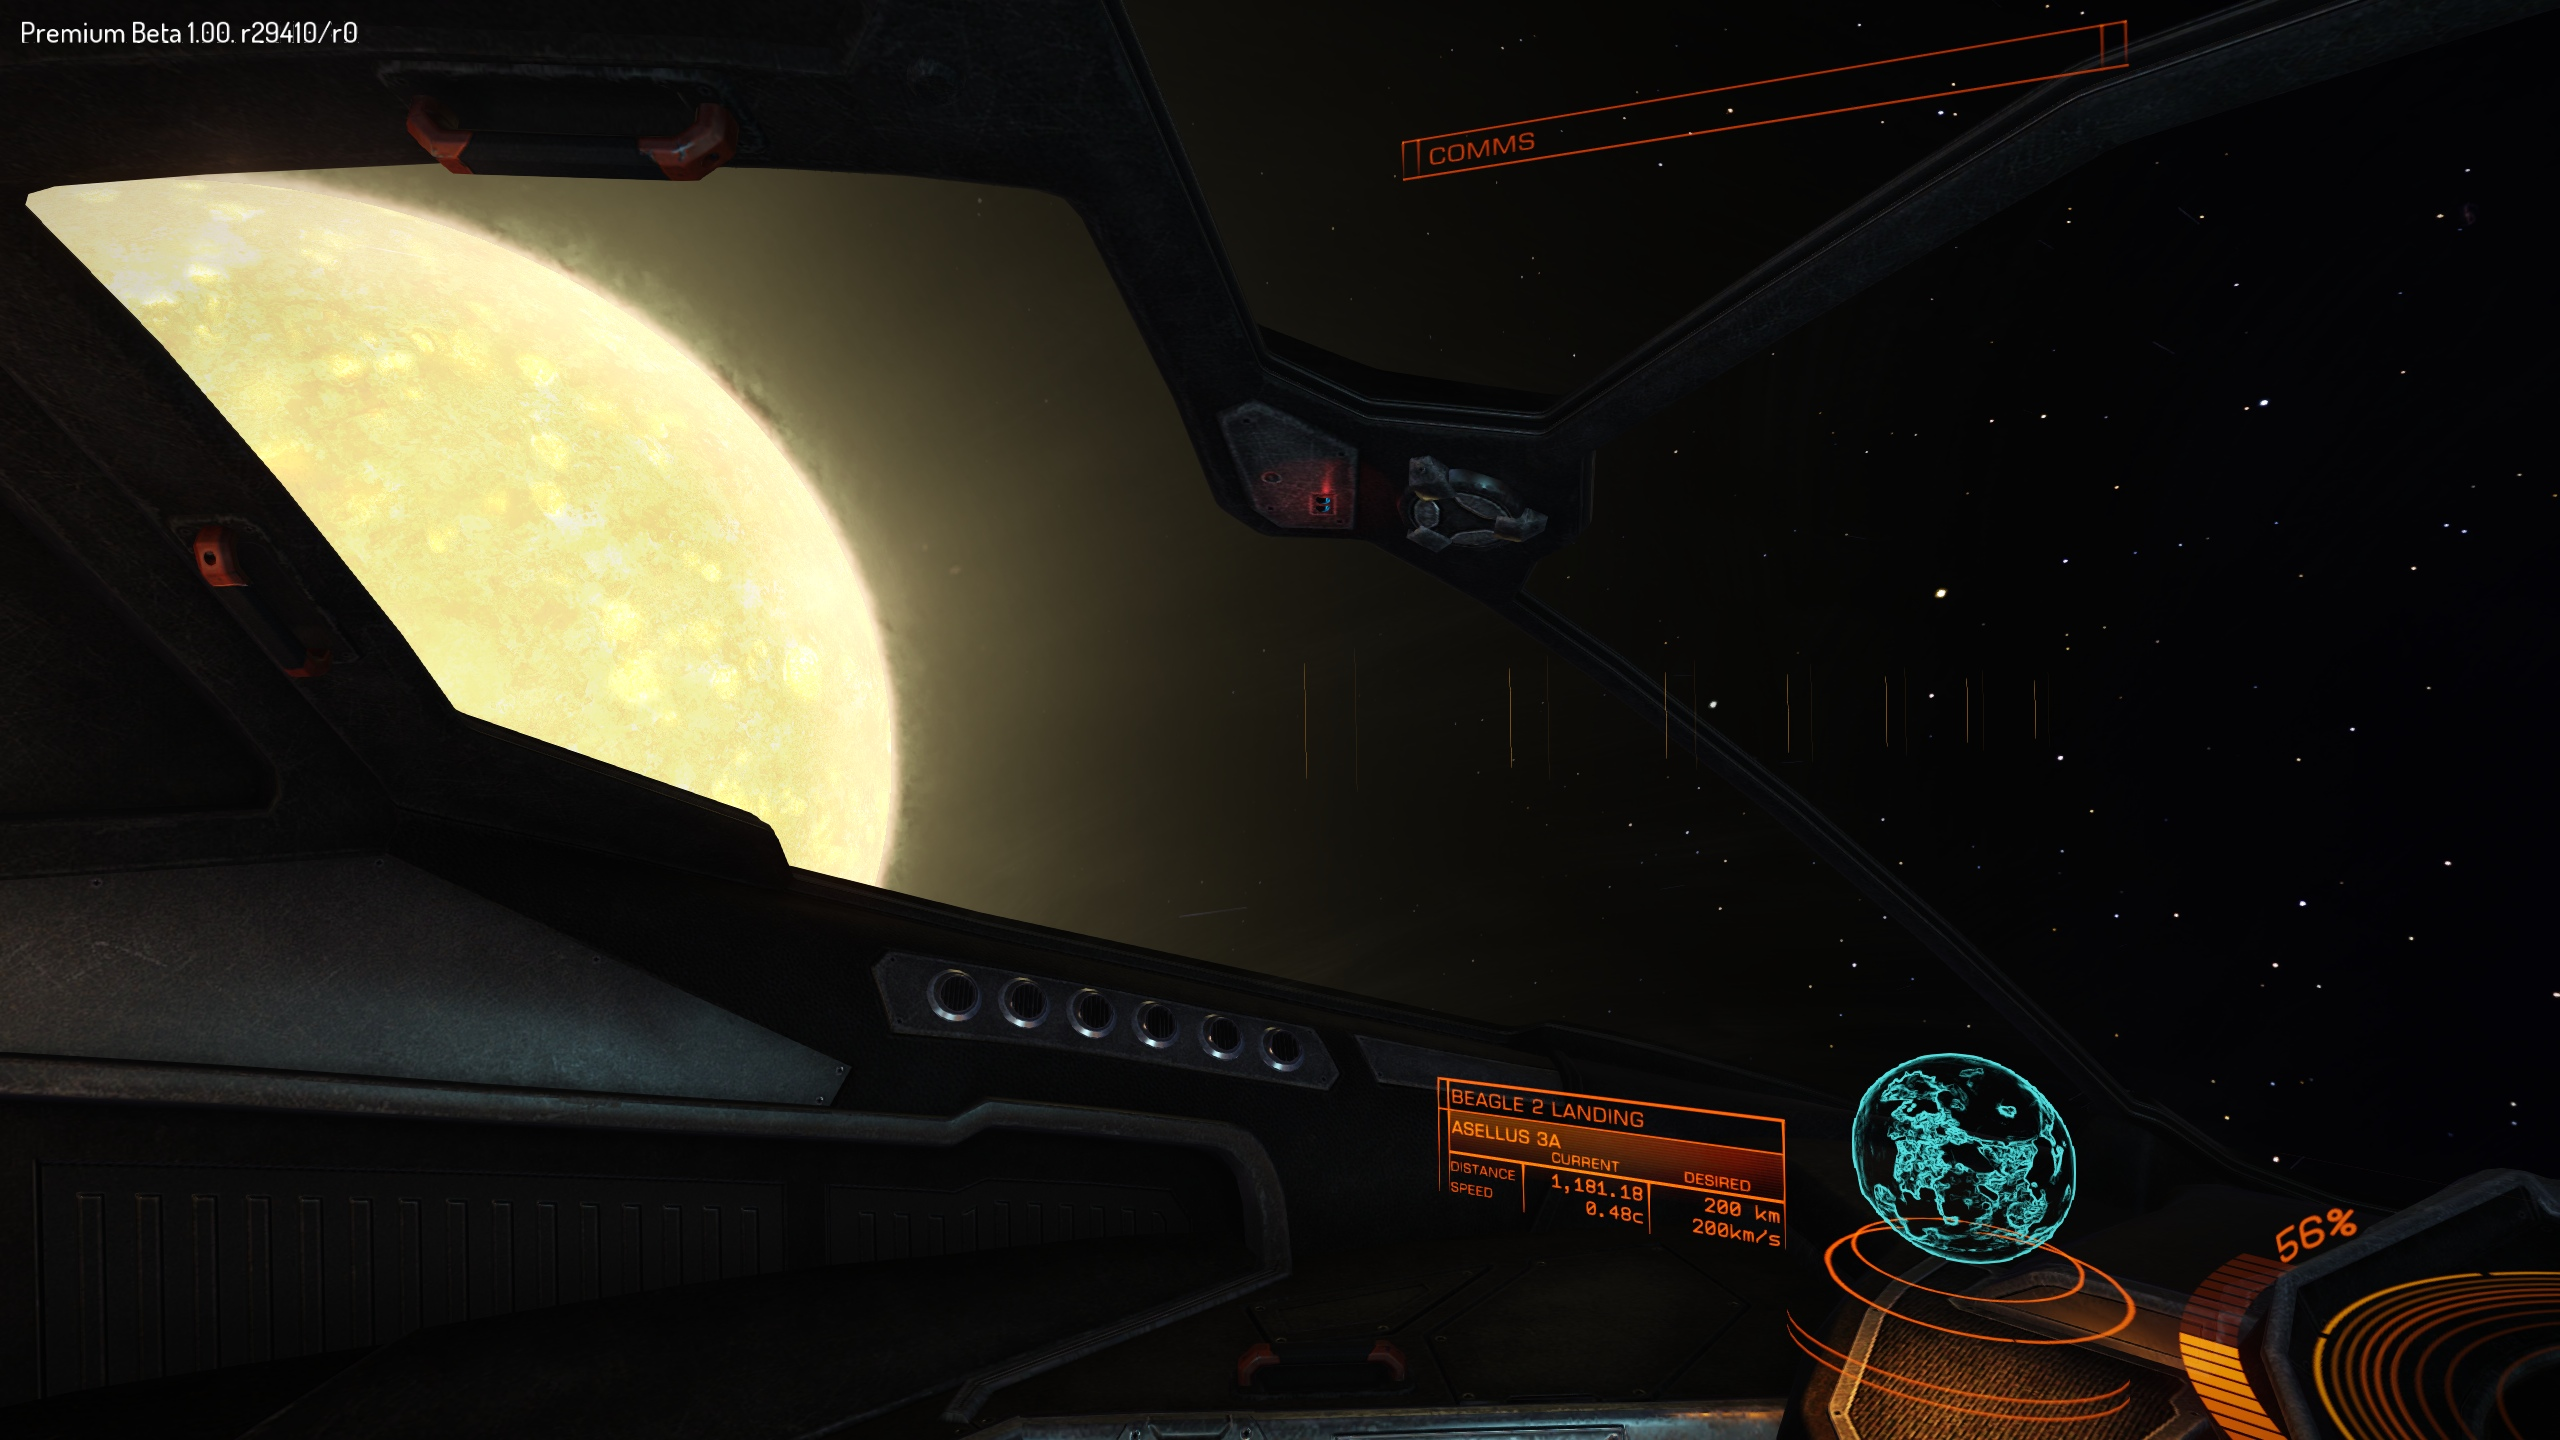 Zipping past the local star. Head tracking makes the game incredibly immersive.